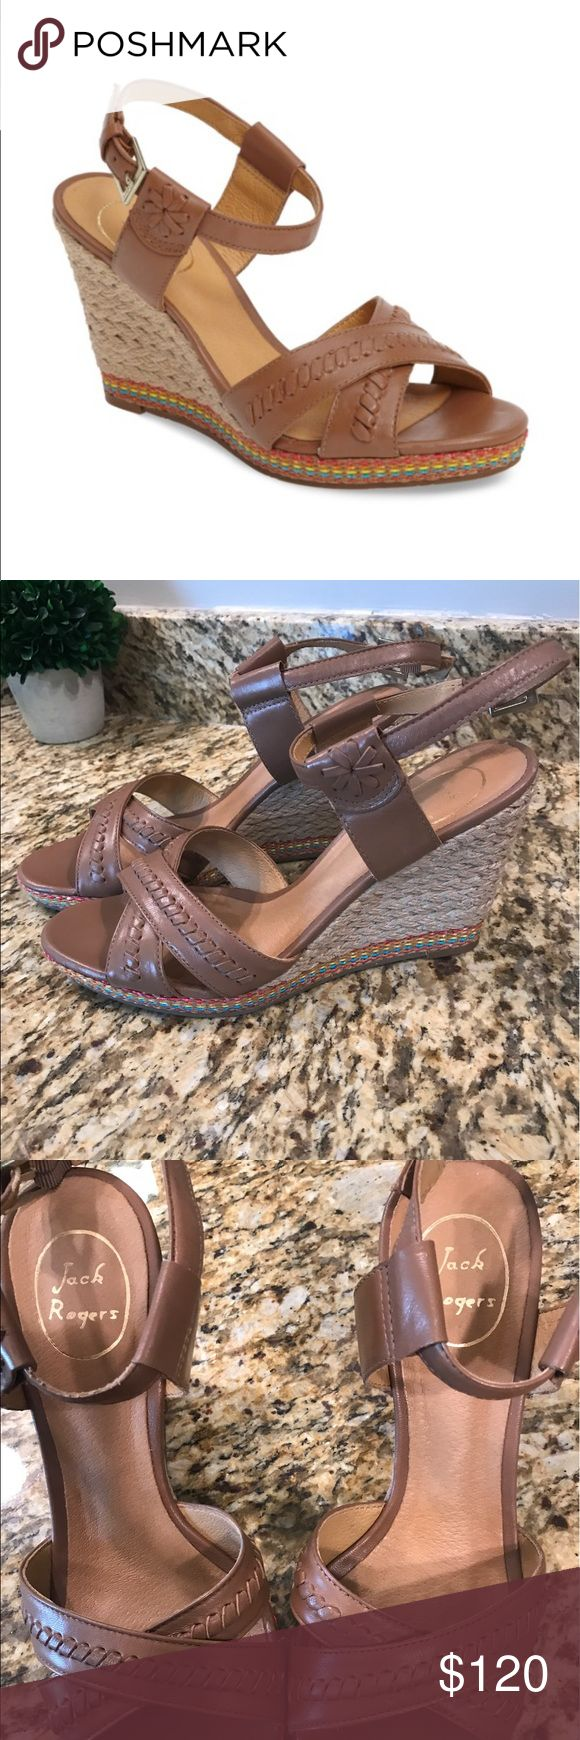 Jack Rogers Abbey Wedge Pristine condition. Wore 1 time on Easter. Not really my style so it just wasn't a good match for me. Very comfortable. Purchased at Nordstrom in early summer 2017. These exact shoes are still available on Nordstrom website for 187 full price! Jack Rogers Shoes Espadrilles